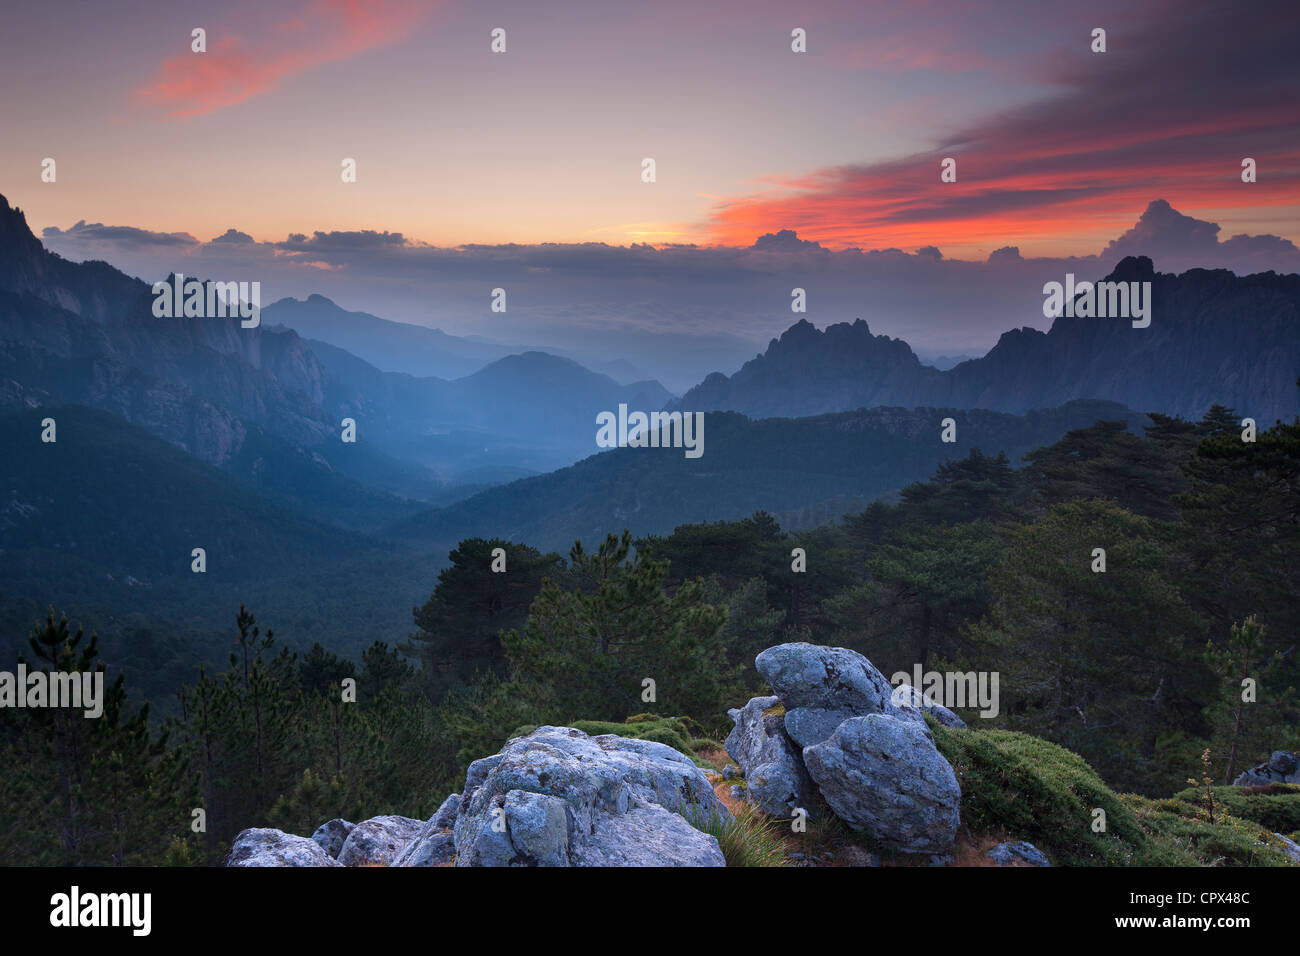 the Col de Bavella at dawn, Bavella Mountains, Corsica, France - Stock Image